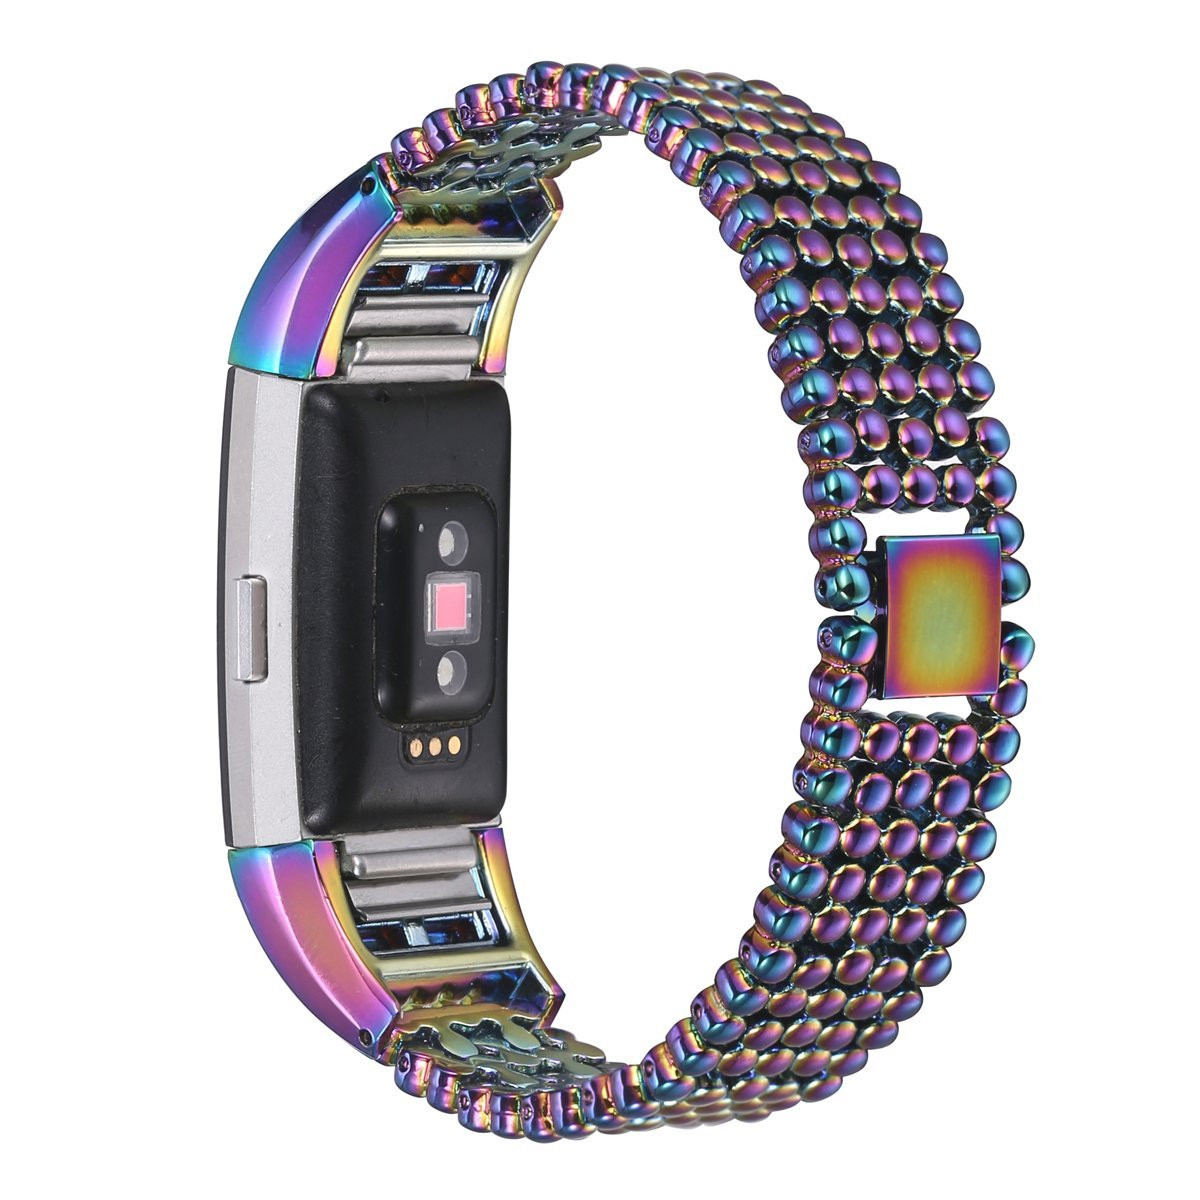 Stainless Steel Wrist Band Loop Strap Clasp for Fitbit Charge 2